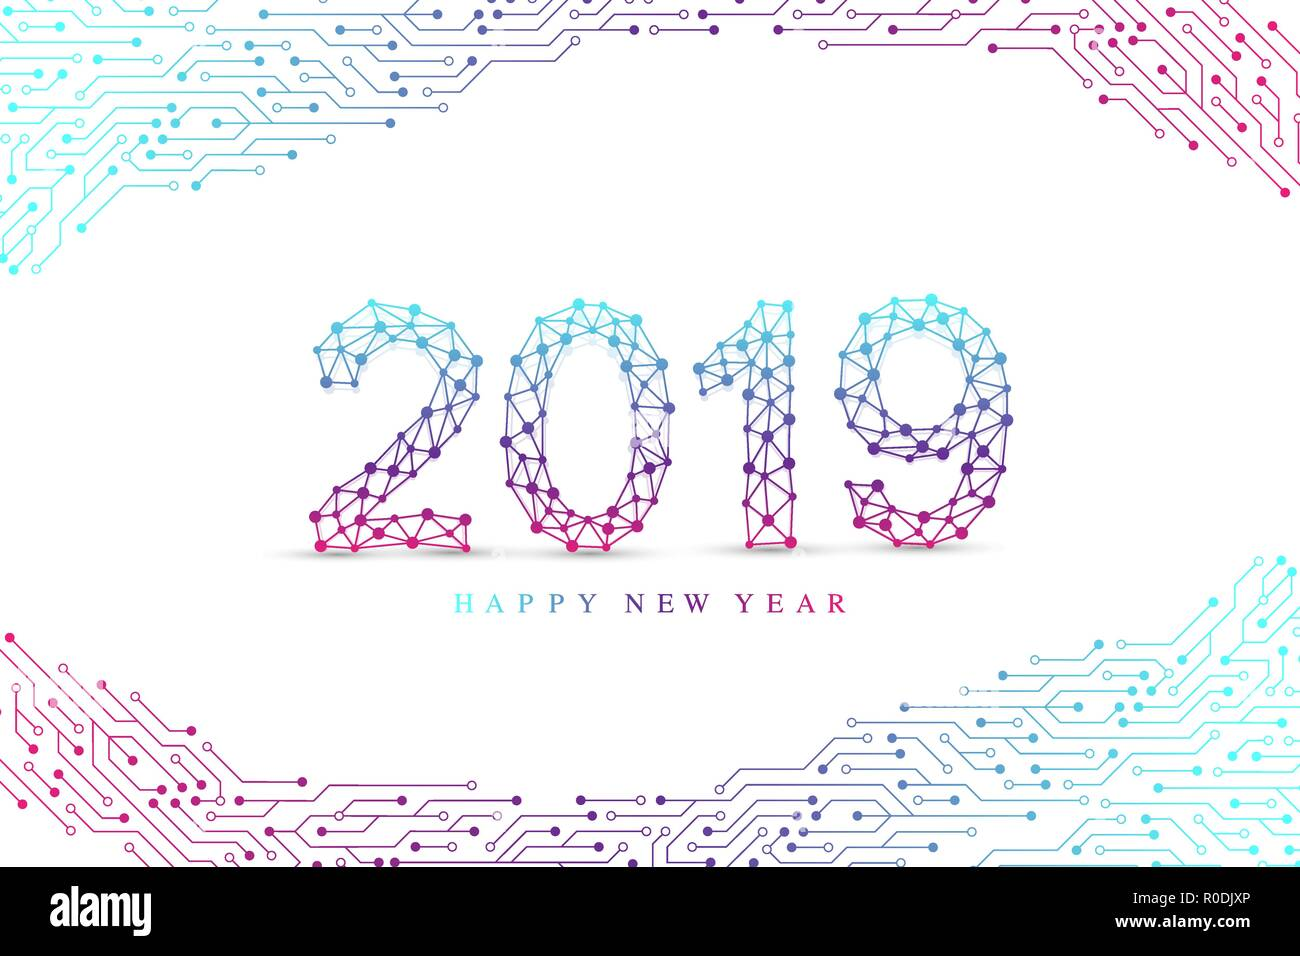 Computer Motherboard Vector Background With Circuit Board Electronic Place For Text Elements Design Christmas And Happy New Year 2019